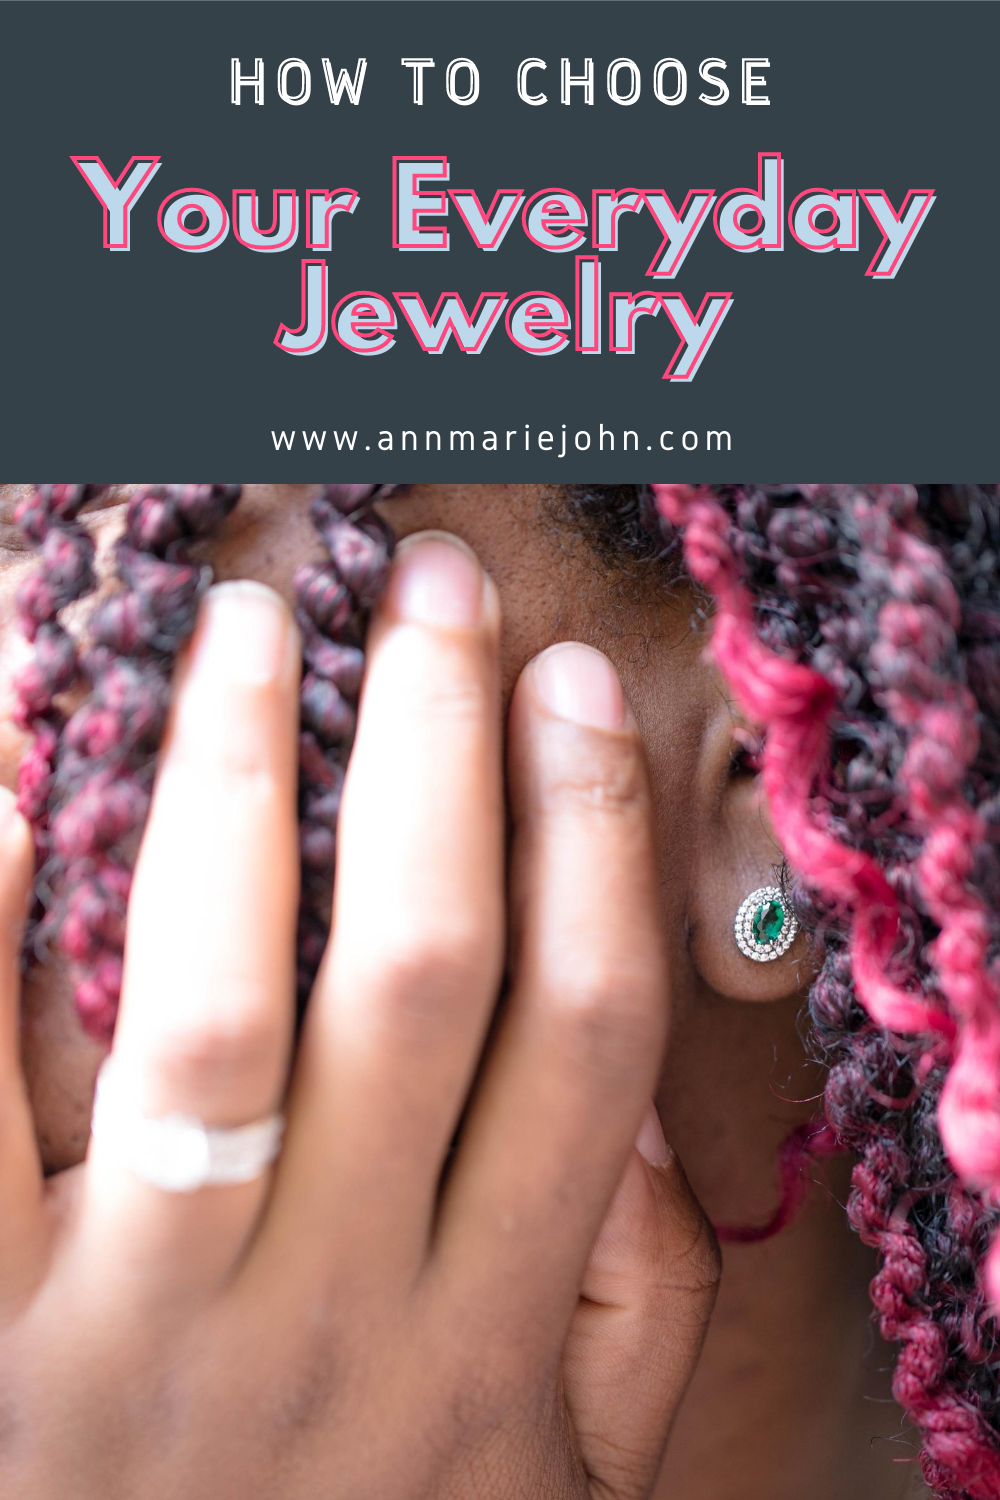 How to Choose Your Everyday Jewelry